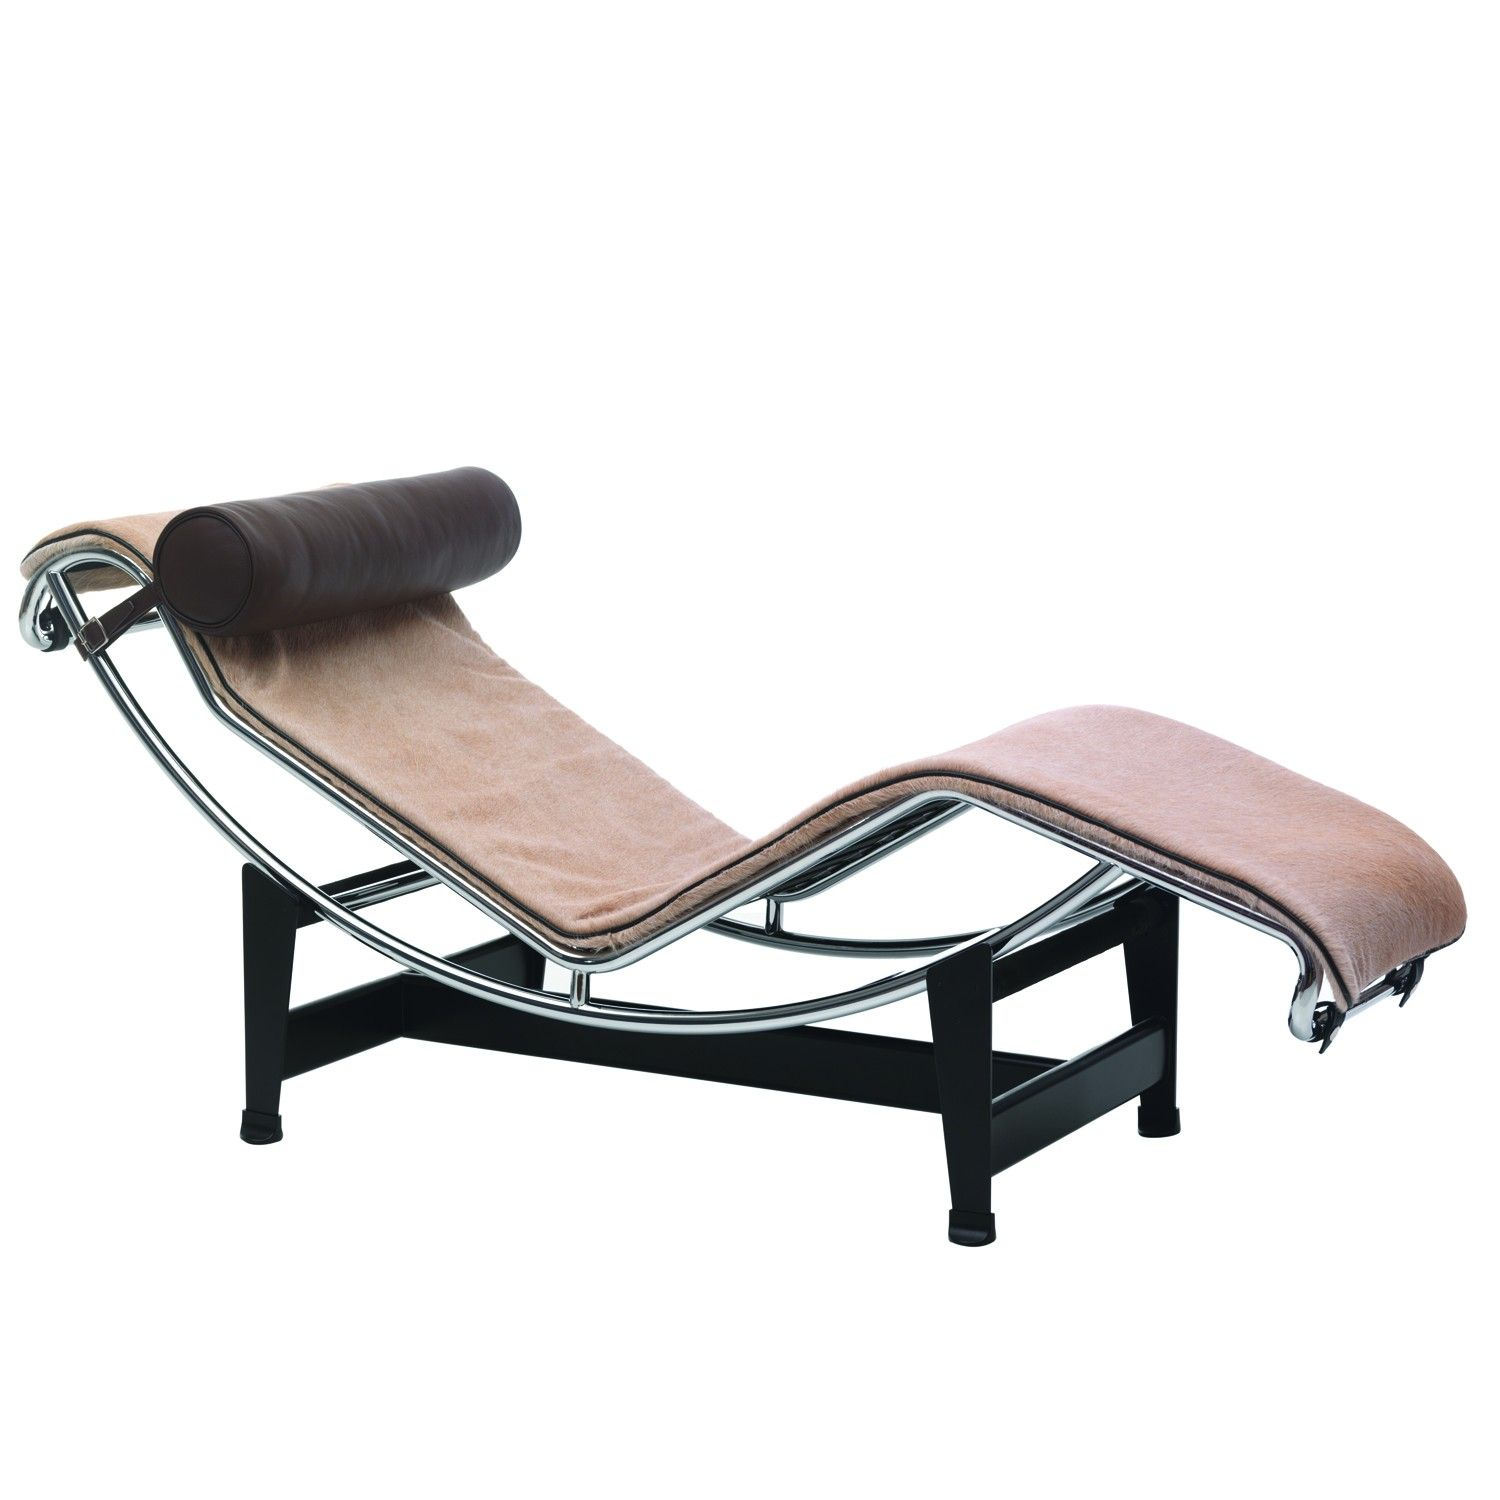 Corbusier Zetel Lc4 Cassina Good Chaise With Lc4 Cassina Simple Mrq Ktm Lc With